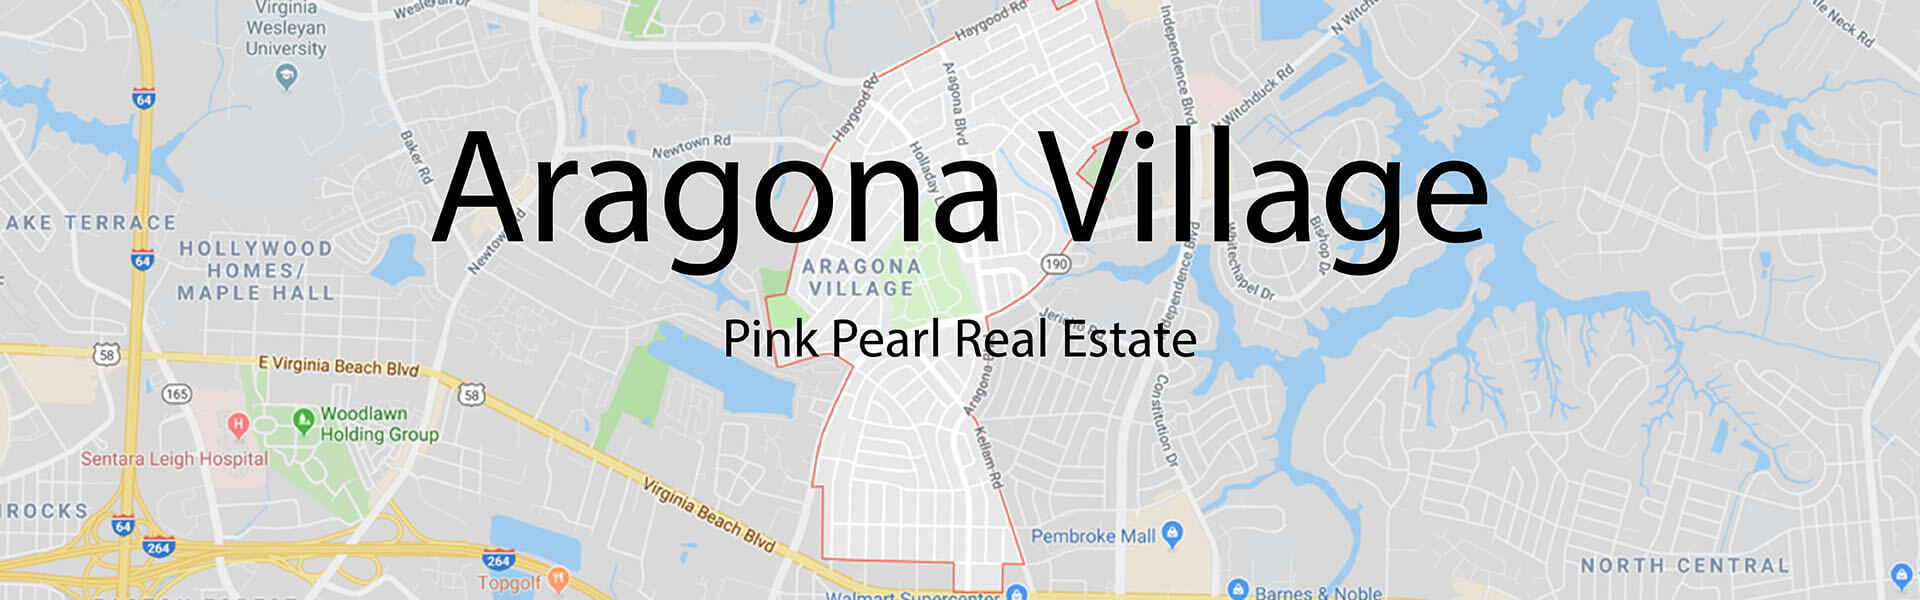 Aragona Village Real Estate in Virginia Beach VA 23462